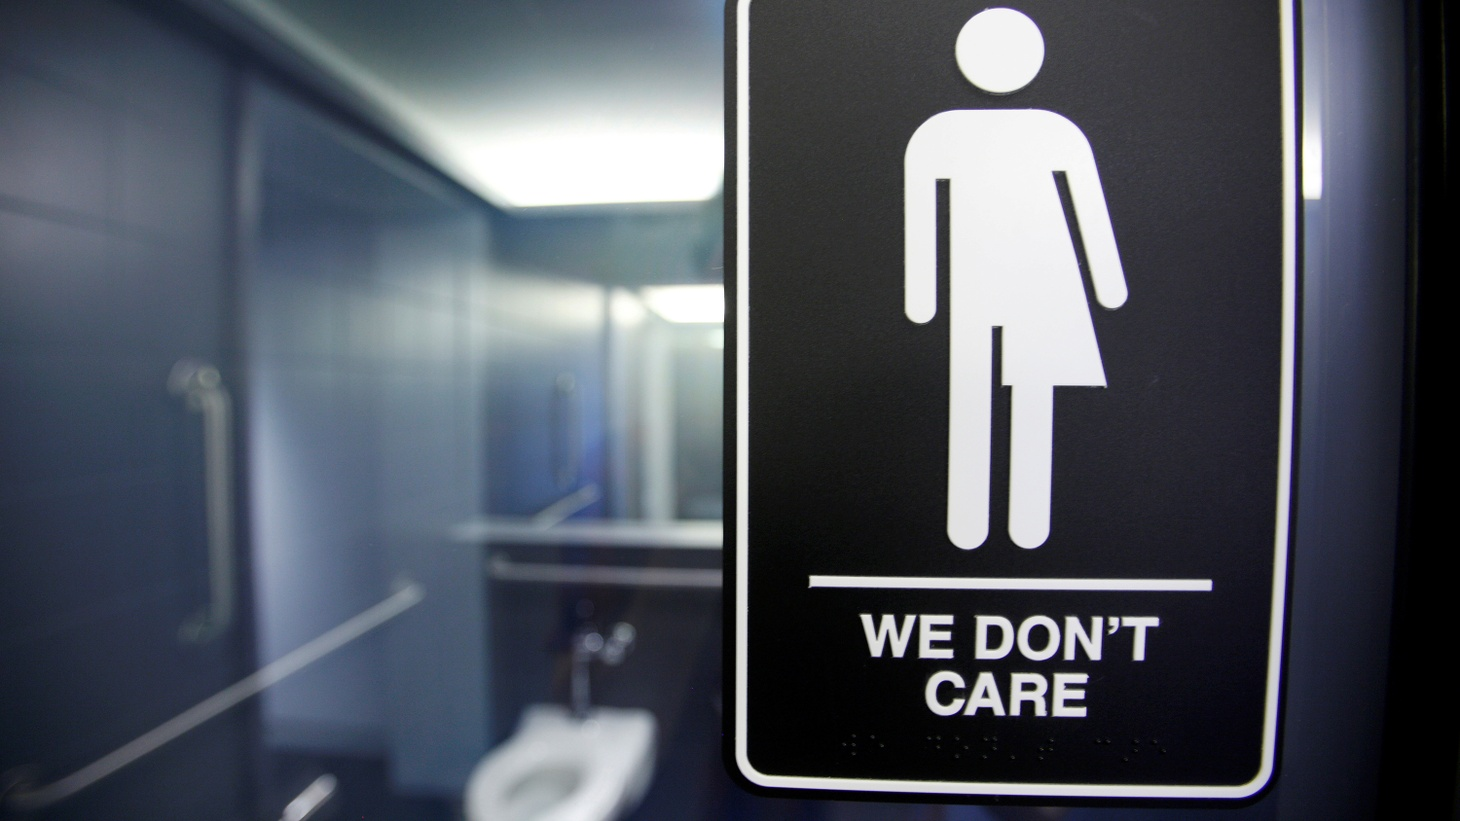 The US and North Carolina have sued each over the state's new law restricting public bathroom use by transgender people. It's a conflict between civil rights and states' rights with shades of the 1960's.